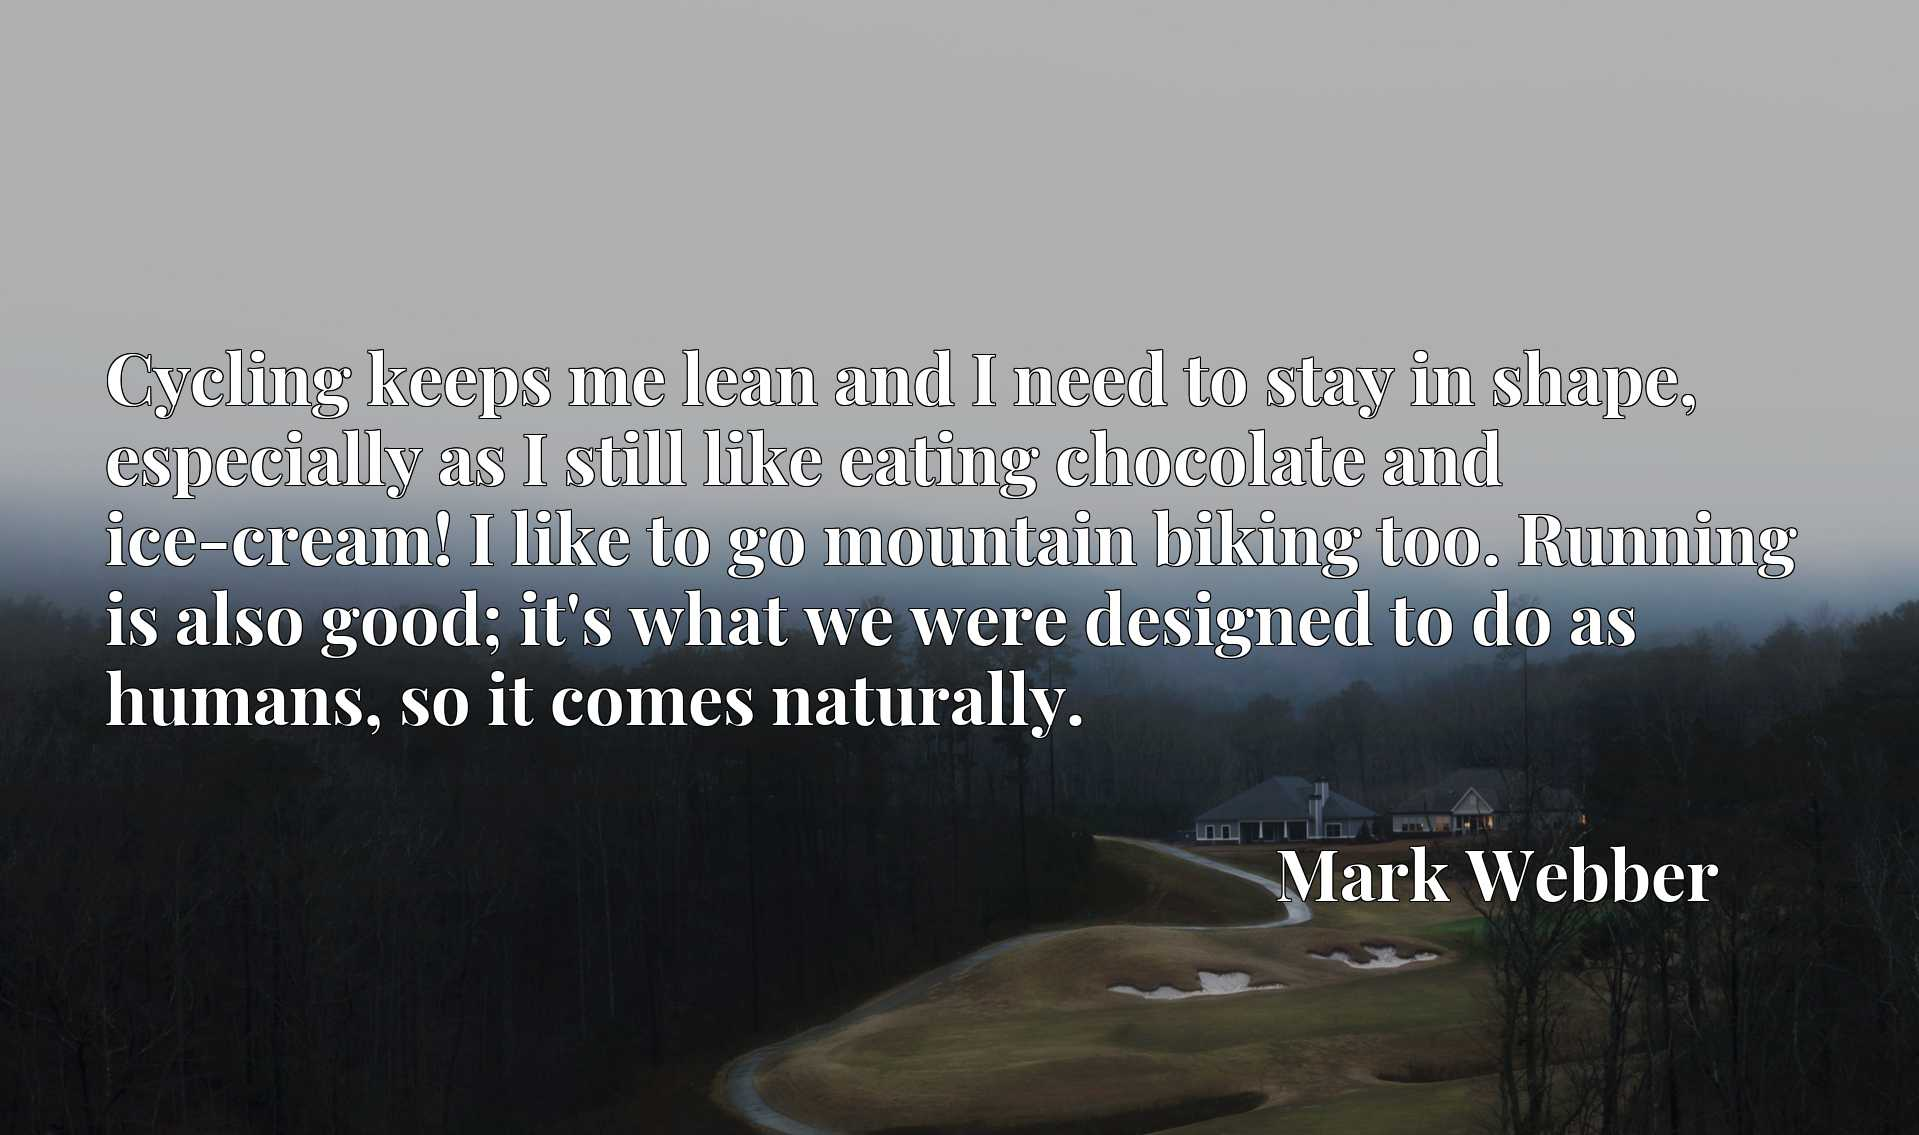 Cycling keeps me lean and I need to stay in shape, especially as I still like eating chocolate and ice-cream! I like to go mountain biking too. Running is also good; it's what we were designed to do as humans, so it comes naturally.